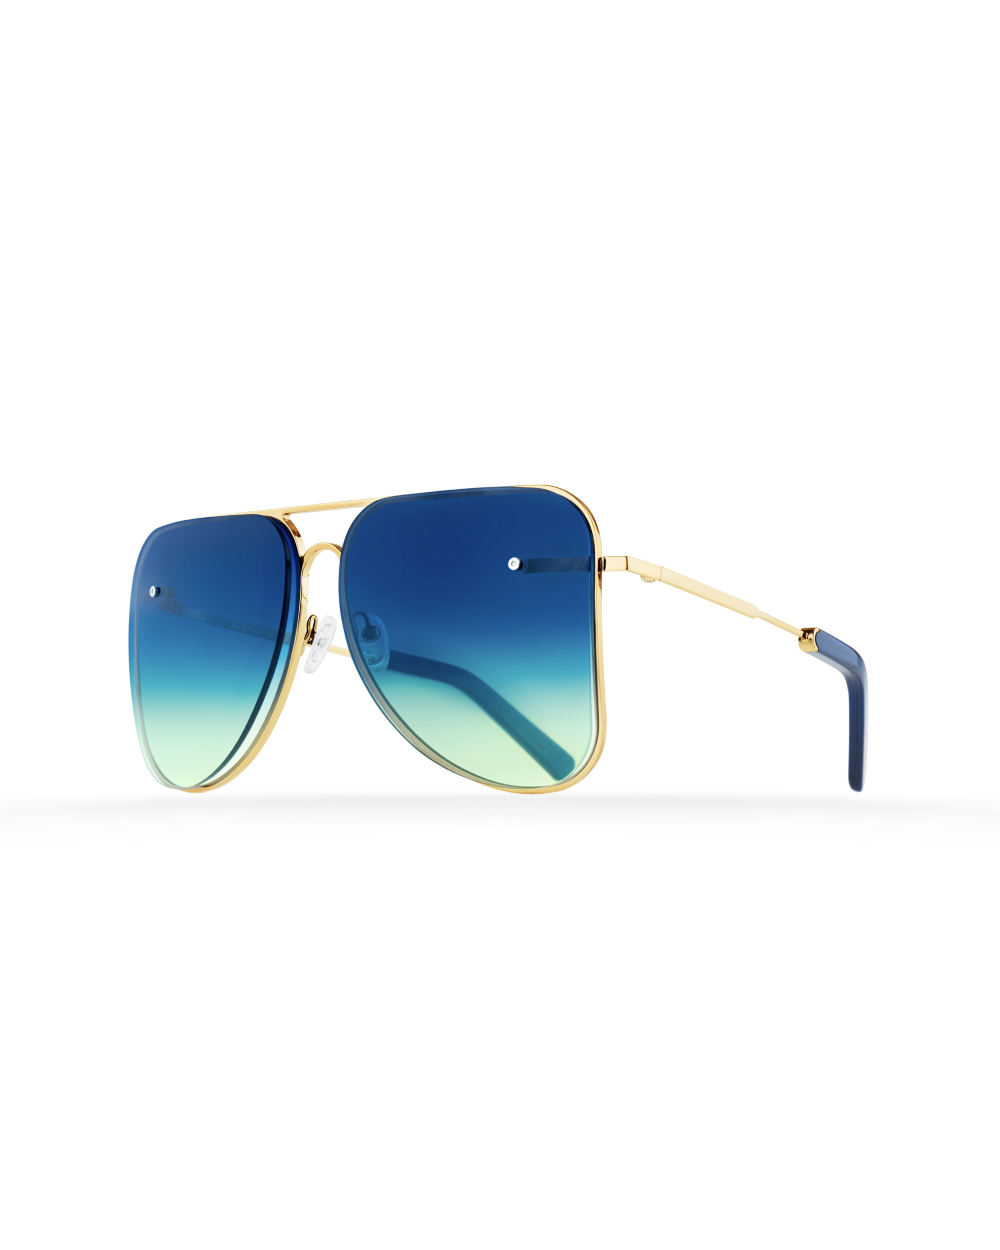 Blue aviator Model 1. Golden metal frame